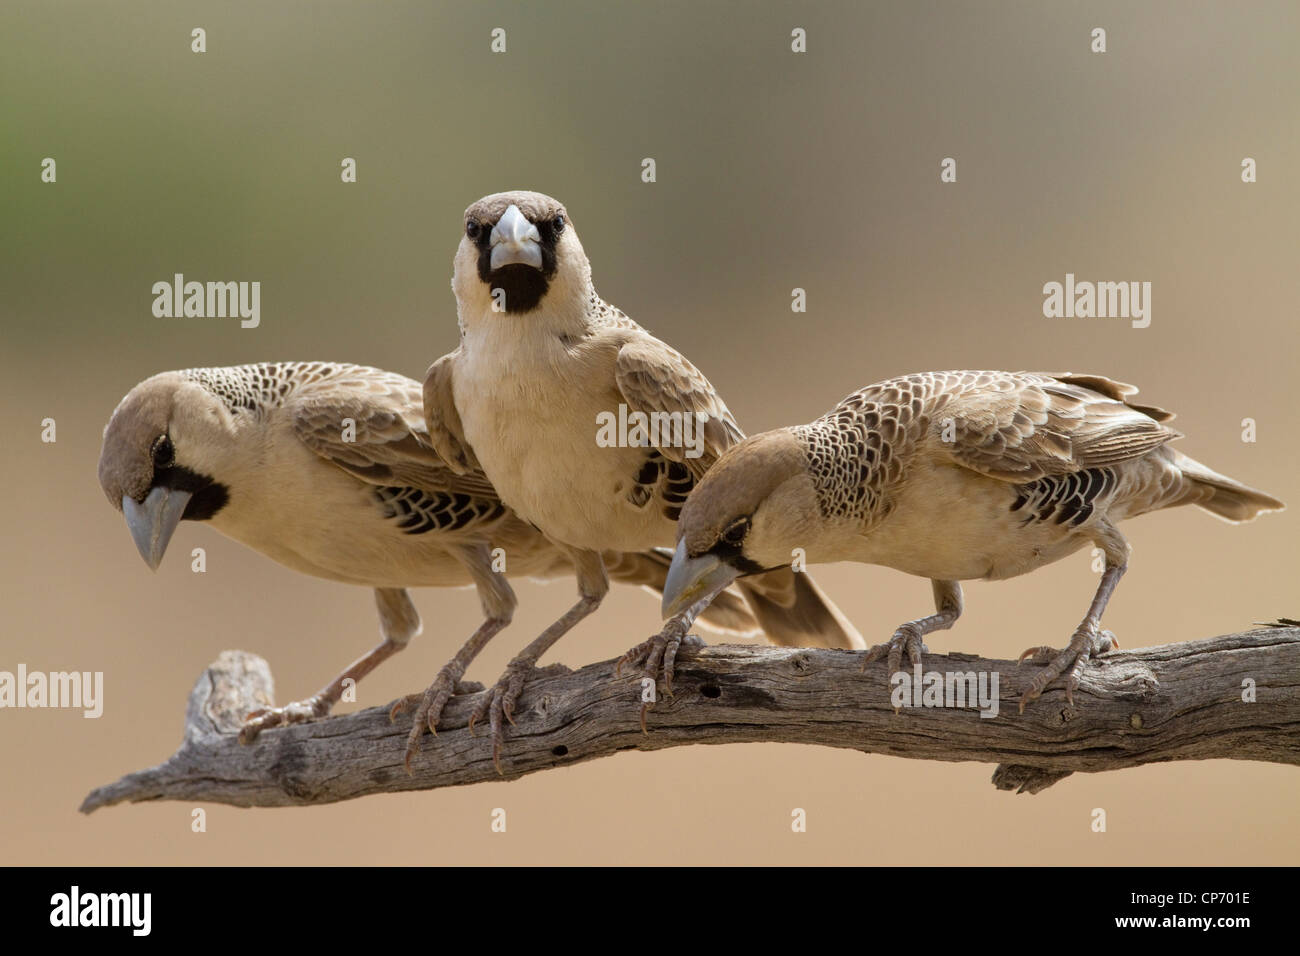 Three sociable weaver birds on a branch looking downwards - Stock Image